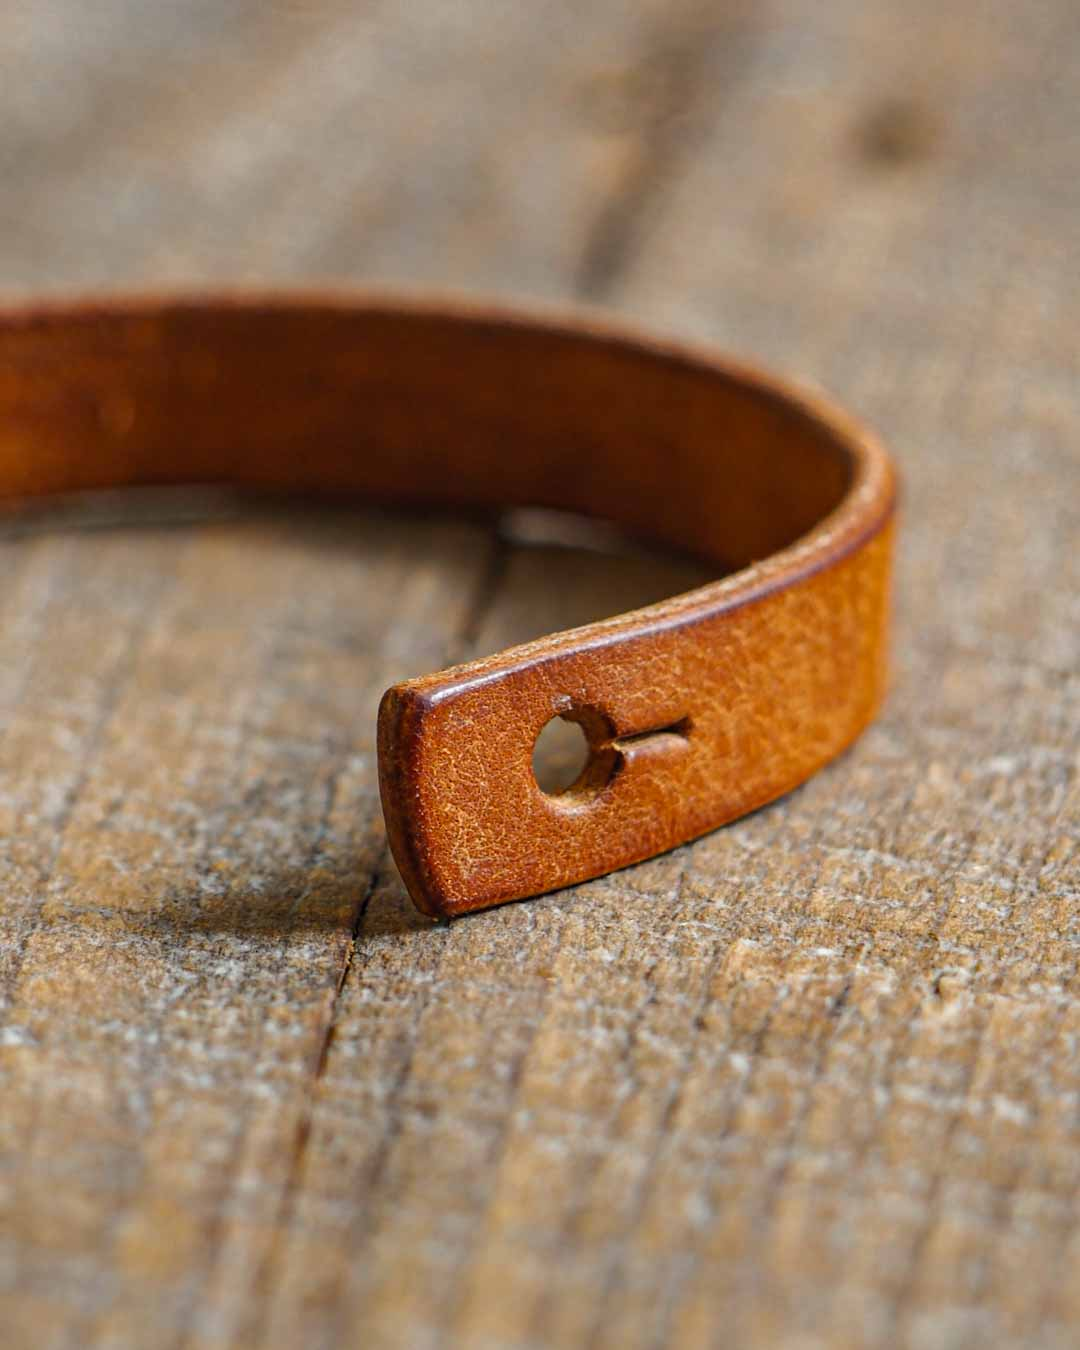 Luava handcrafted leather wrist band veg tan badalassi carlo pueblo cognac single stud hole